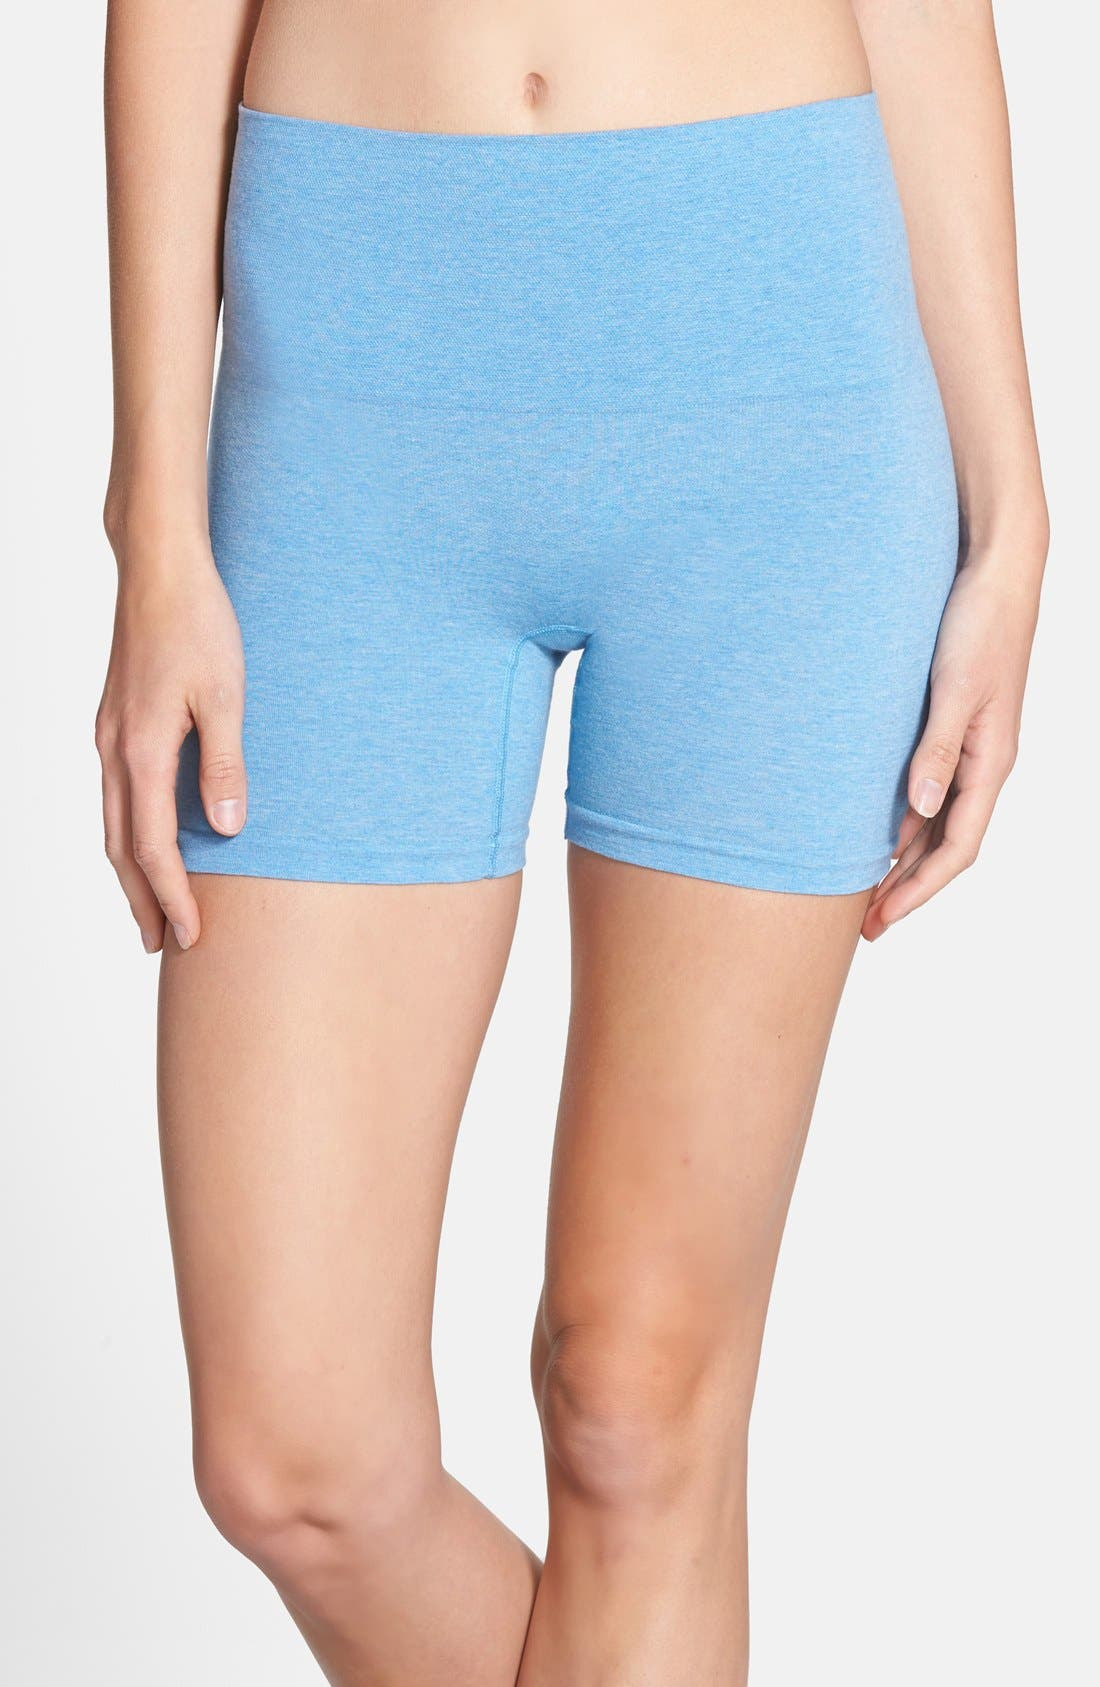 Alternate Image 1 Selected - Yummie 'Tina' Shaping Shorts (2 for $30)